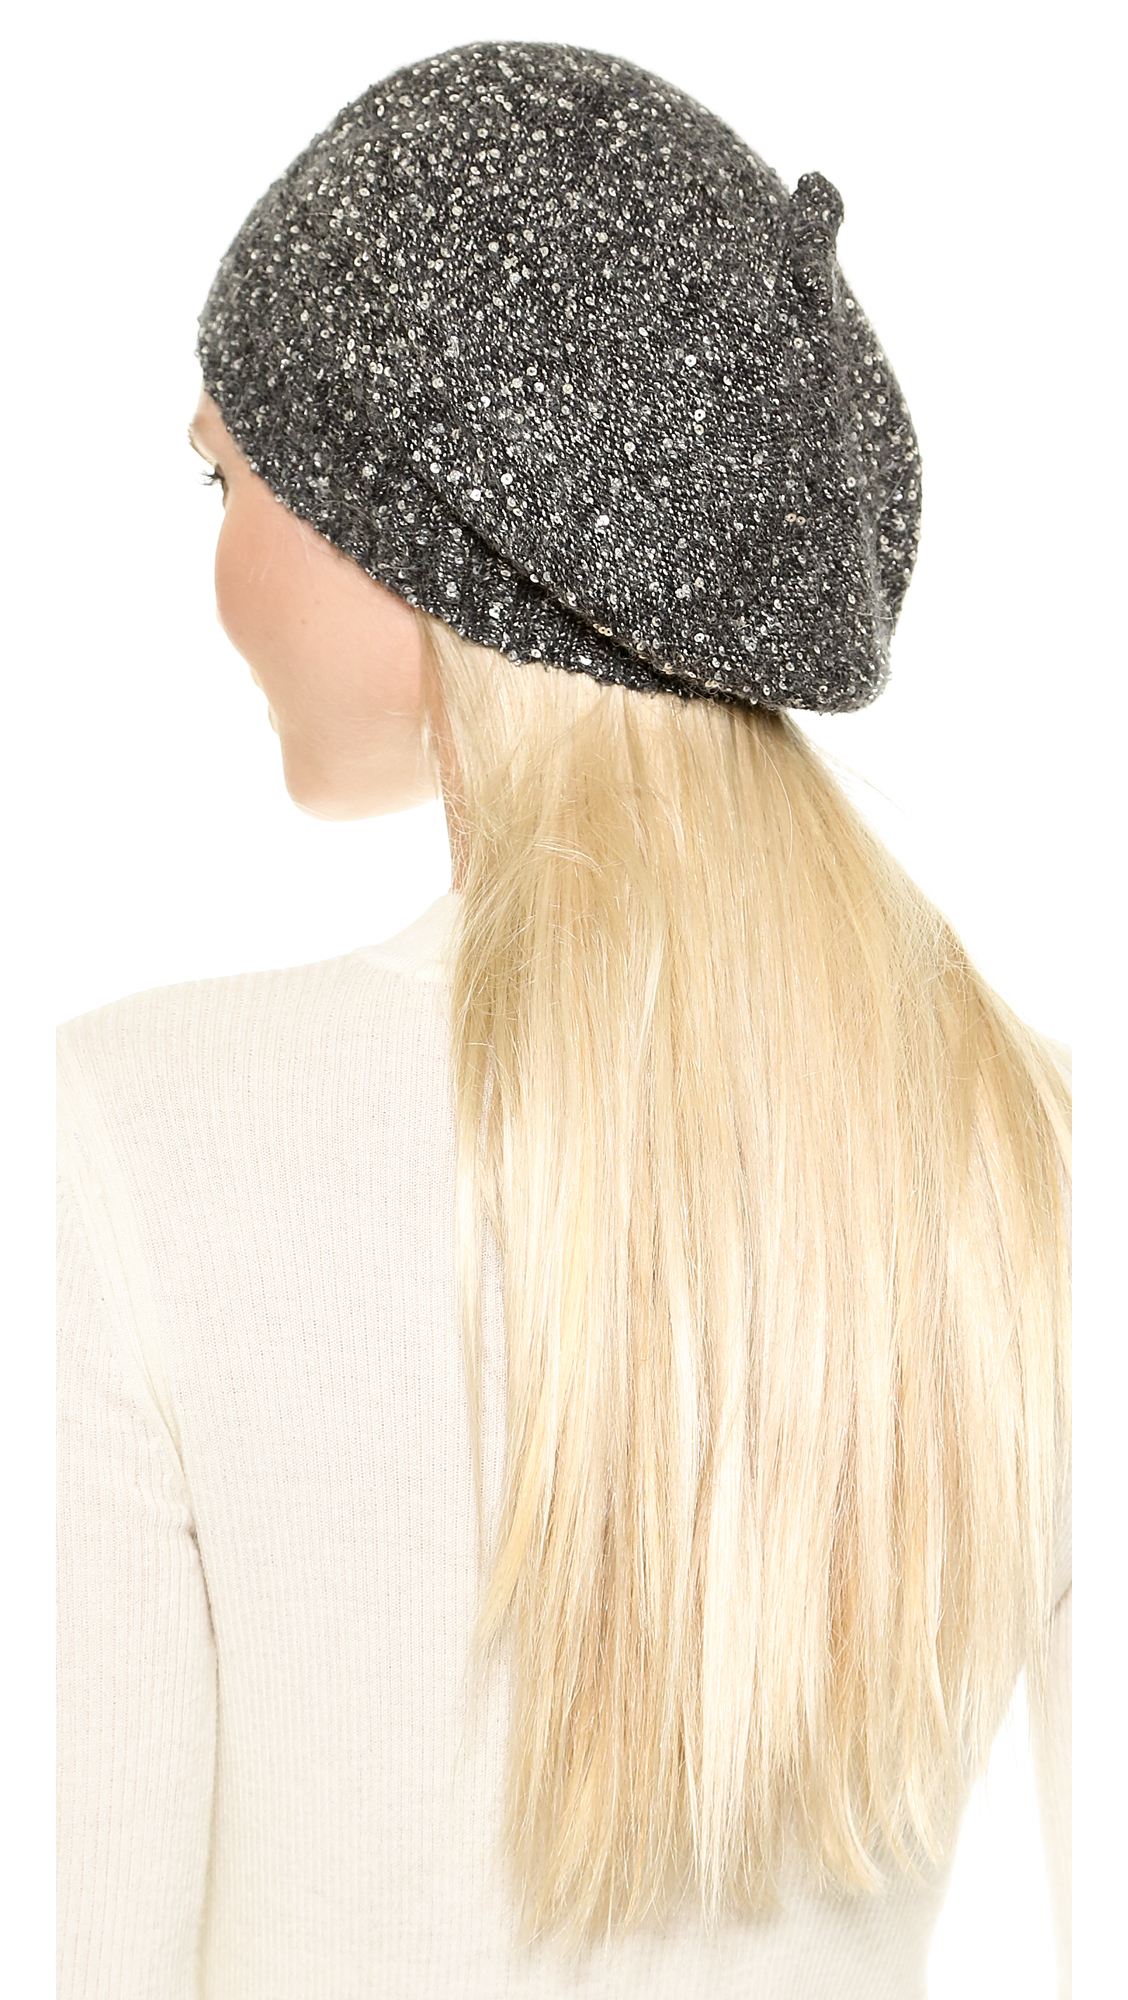 9ace2b78133b8 Lyst - Kate Spade Cosmic Glow Allover Sequin Beret - Black in Gray